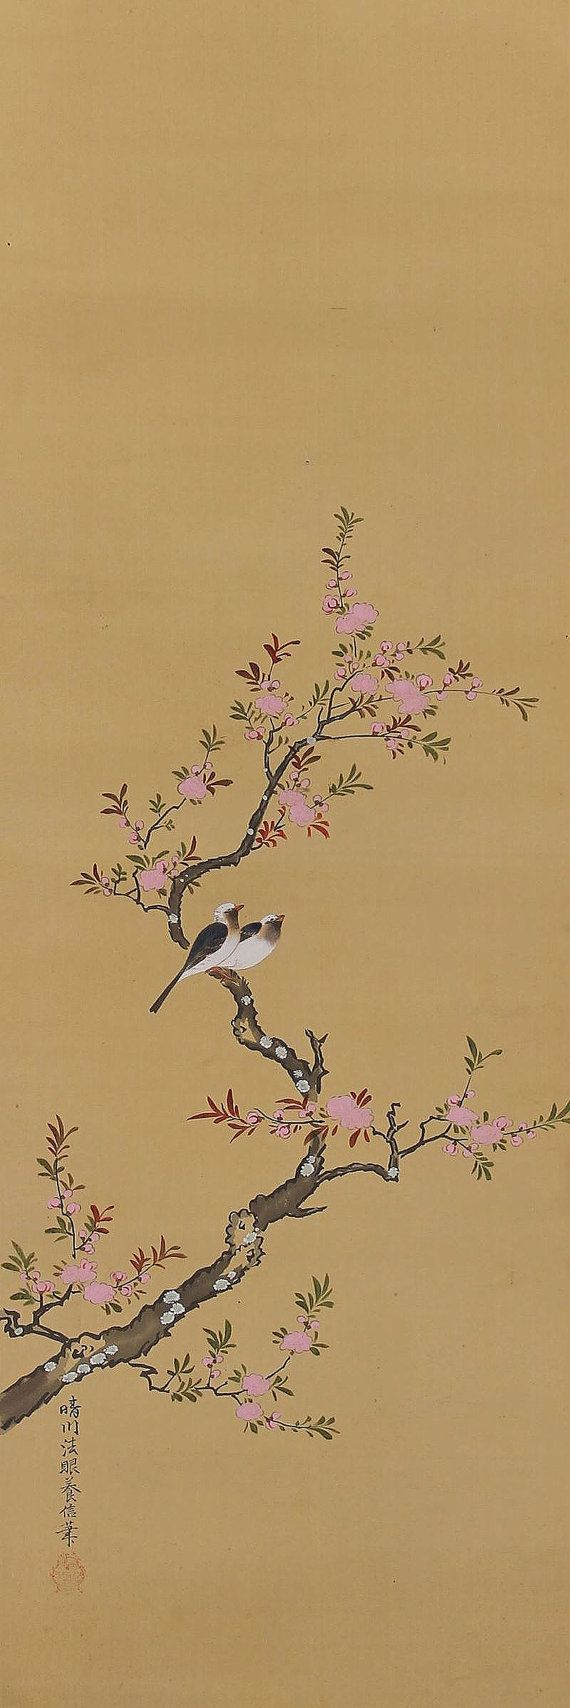 Bird and Flower by Kano Osanobu. Japanese hanging scroll painting.